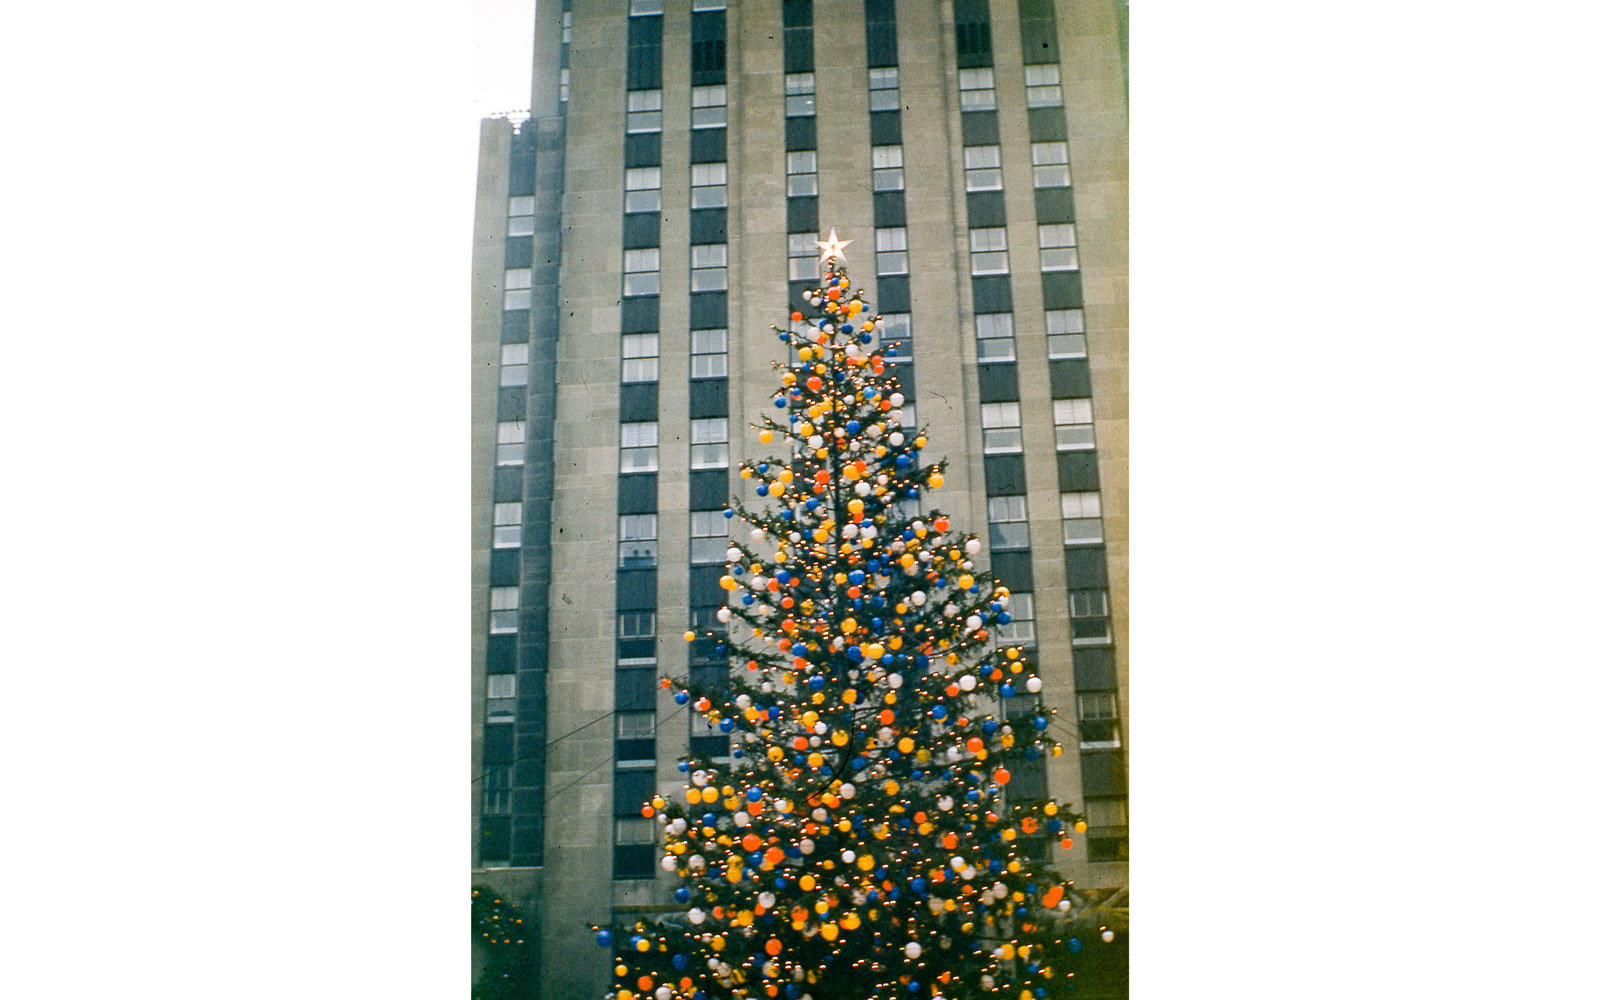 View of the Rockefeller Center Christmas tree fully adorned in colored globe lights and a 5-pointed star, in Rockefeller Center Plaza, midtown Manhattan, New York City, December, 1955